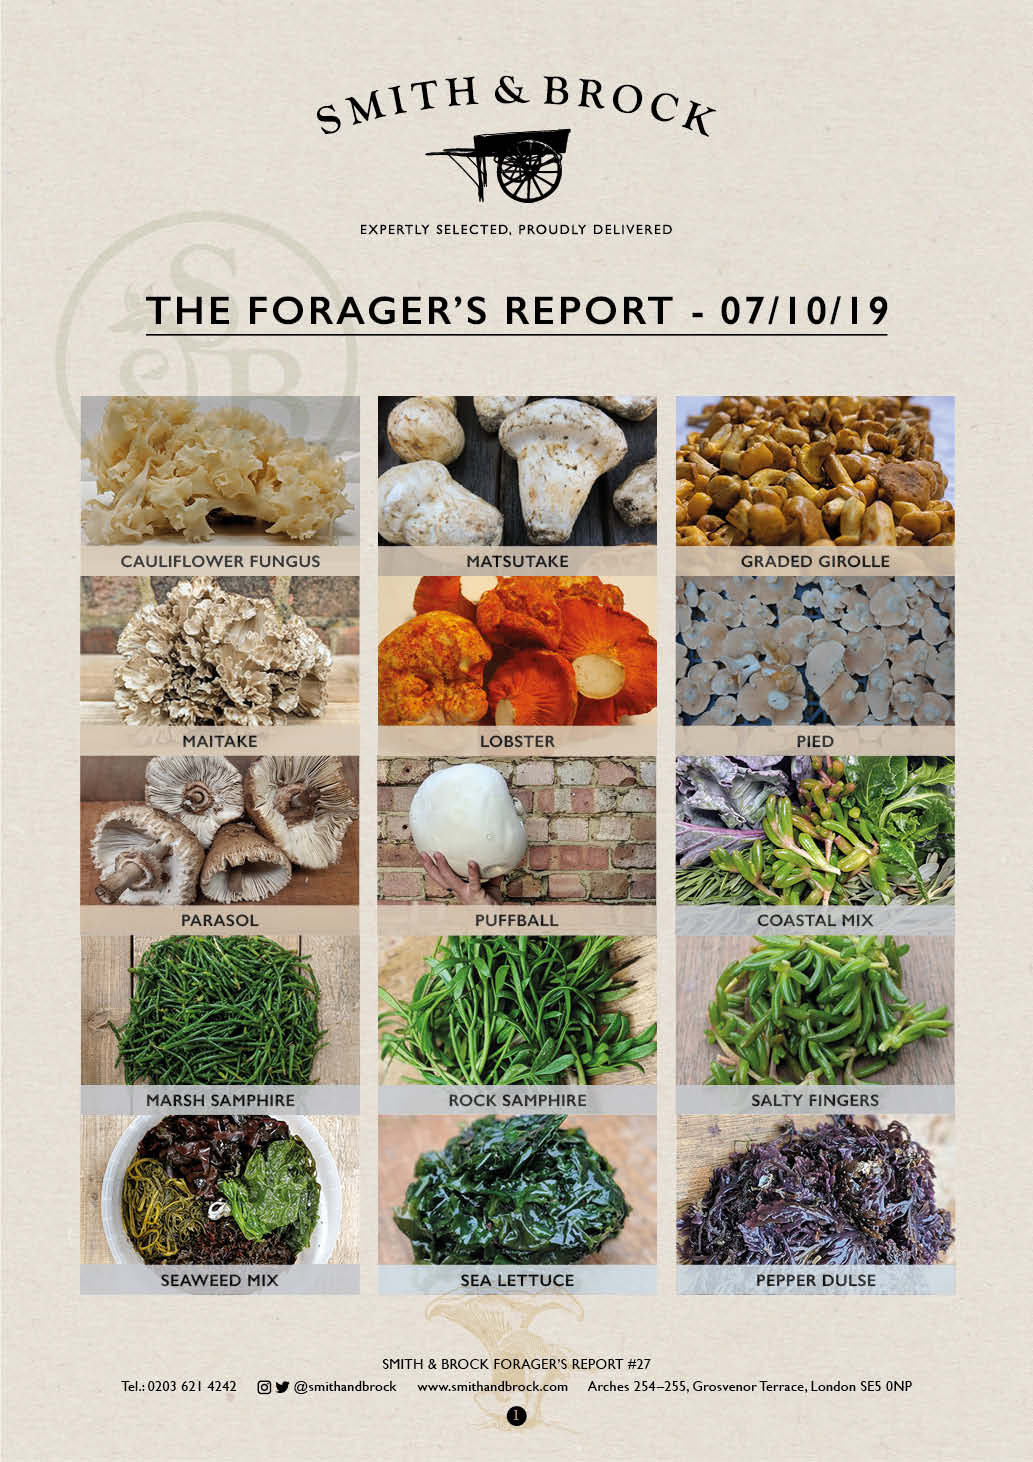 Smith&Brock Foraged Products Report 07 Oct 2019 27